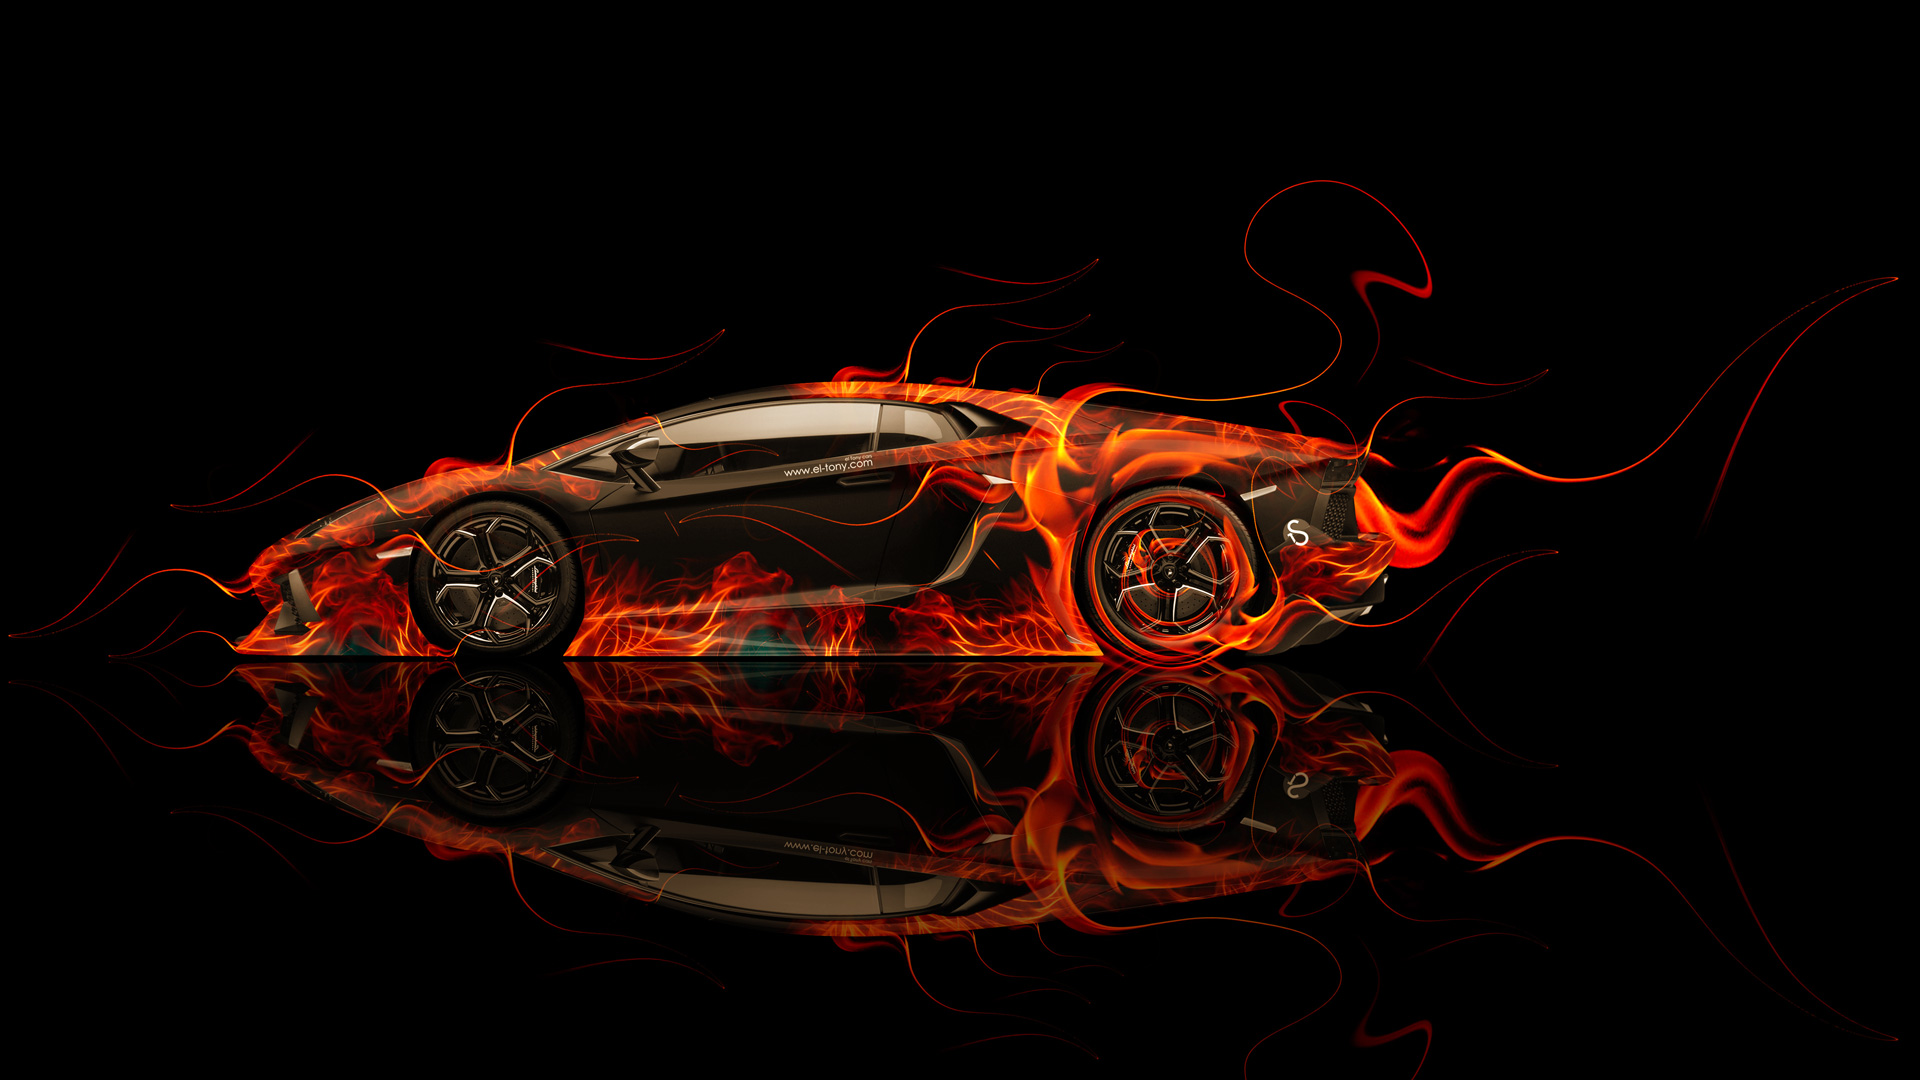 Exceptionnel Lamborghini Aventador Side Fire Abstract Car 2014 HD